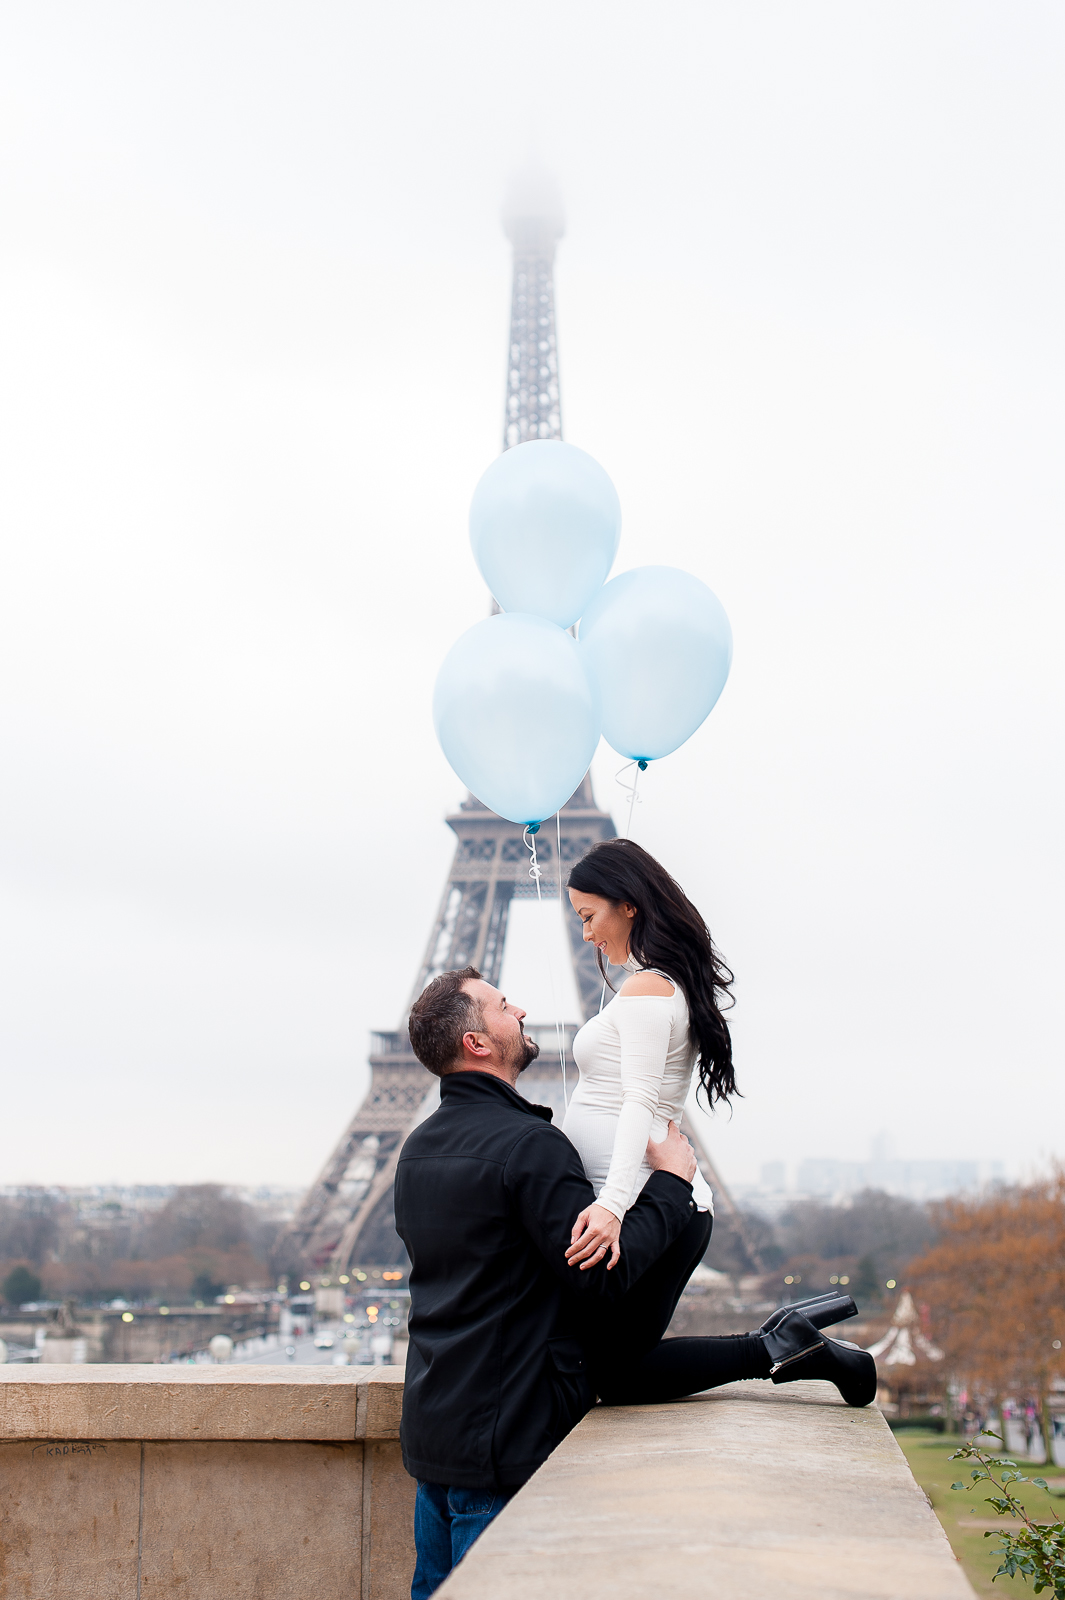 chanelle-and-david-in-paris-0115